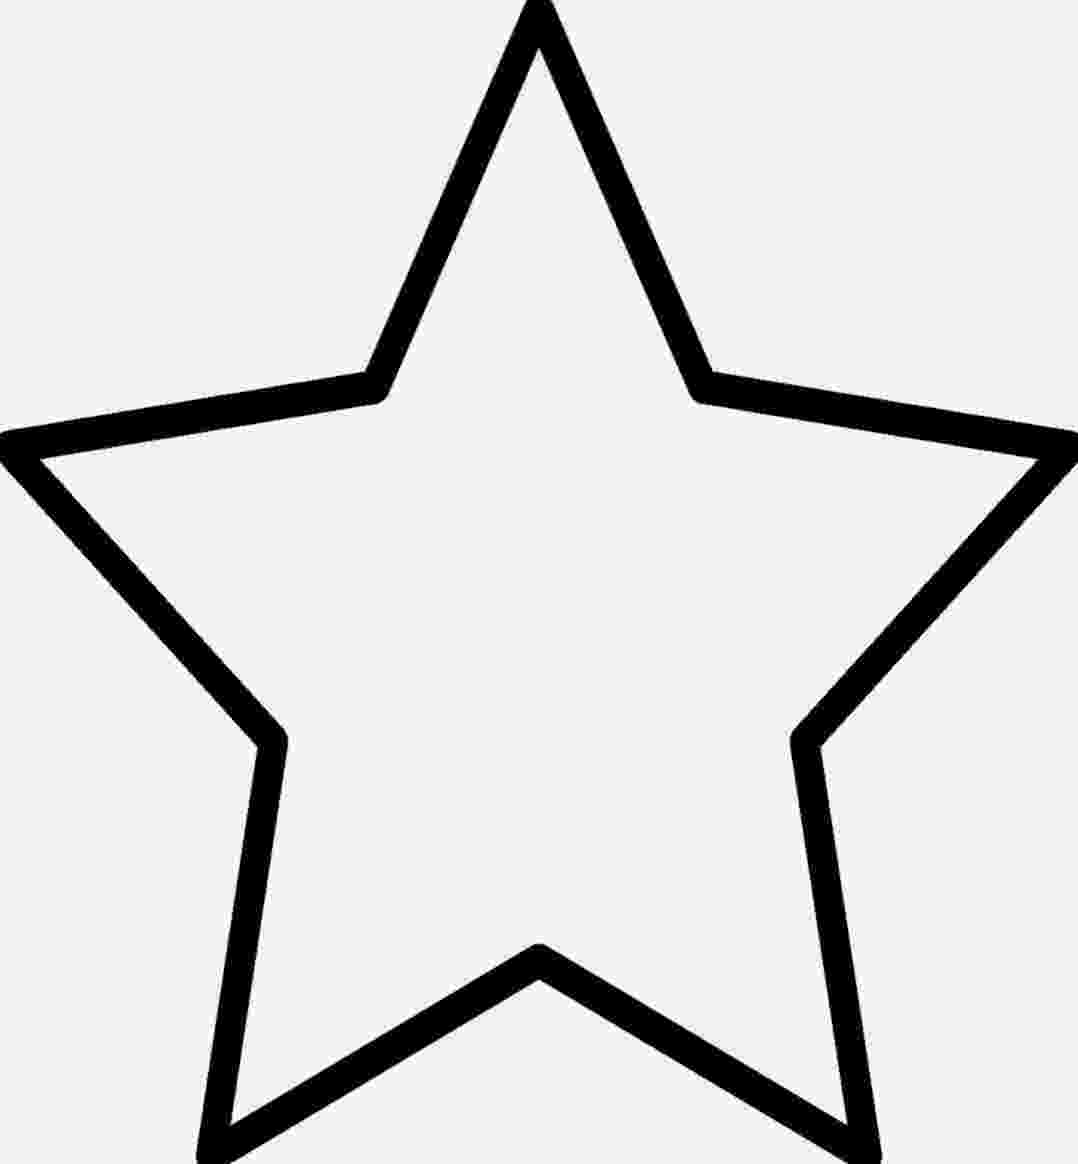 picture of a star to color free printable star coloring pages for kids star a to picture color of